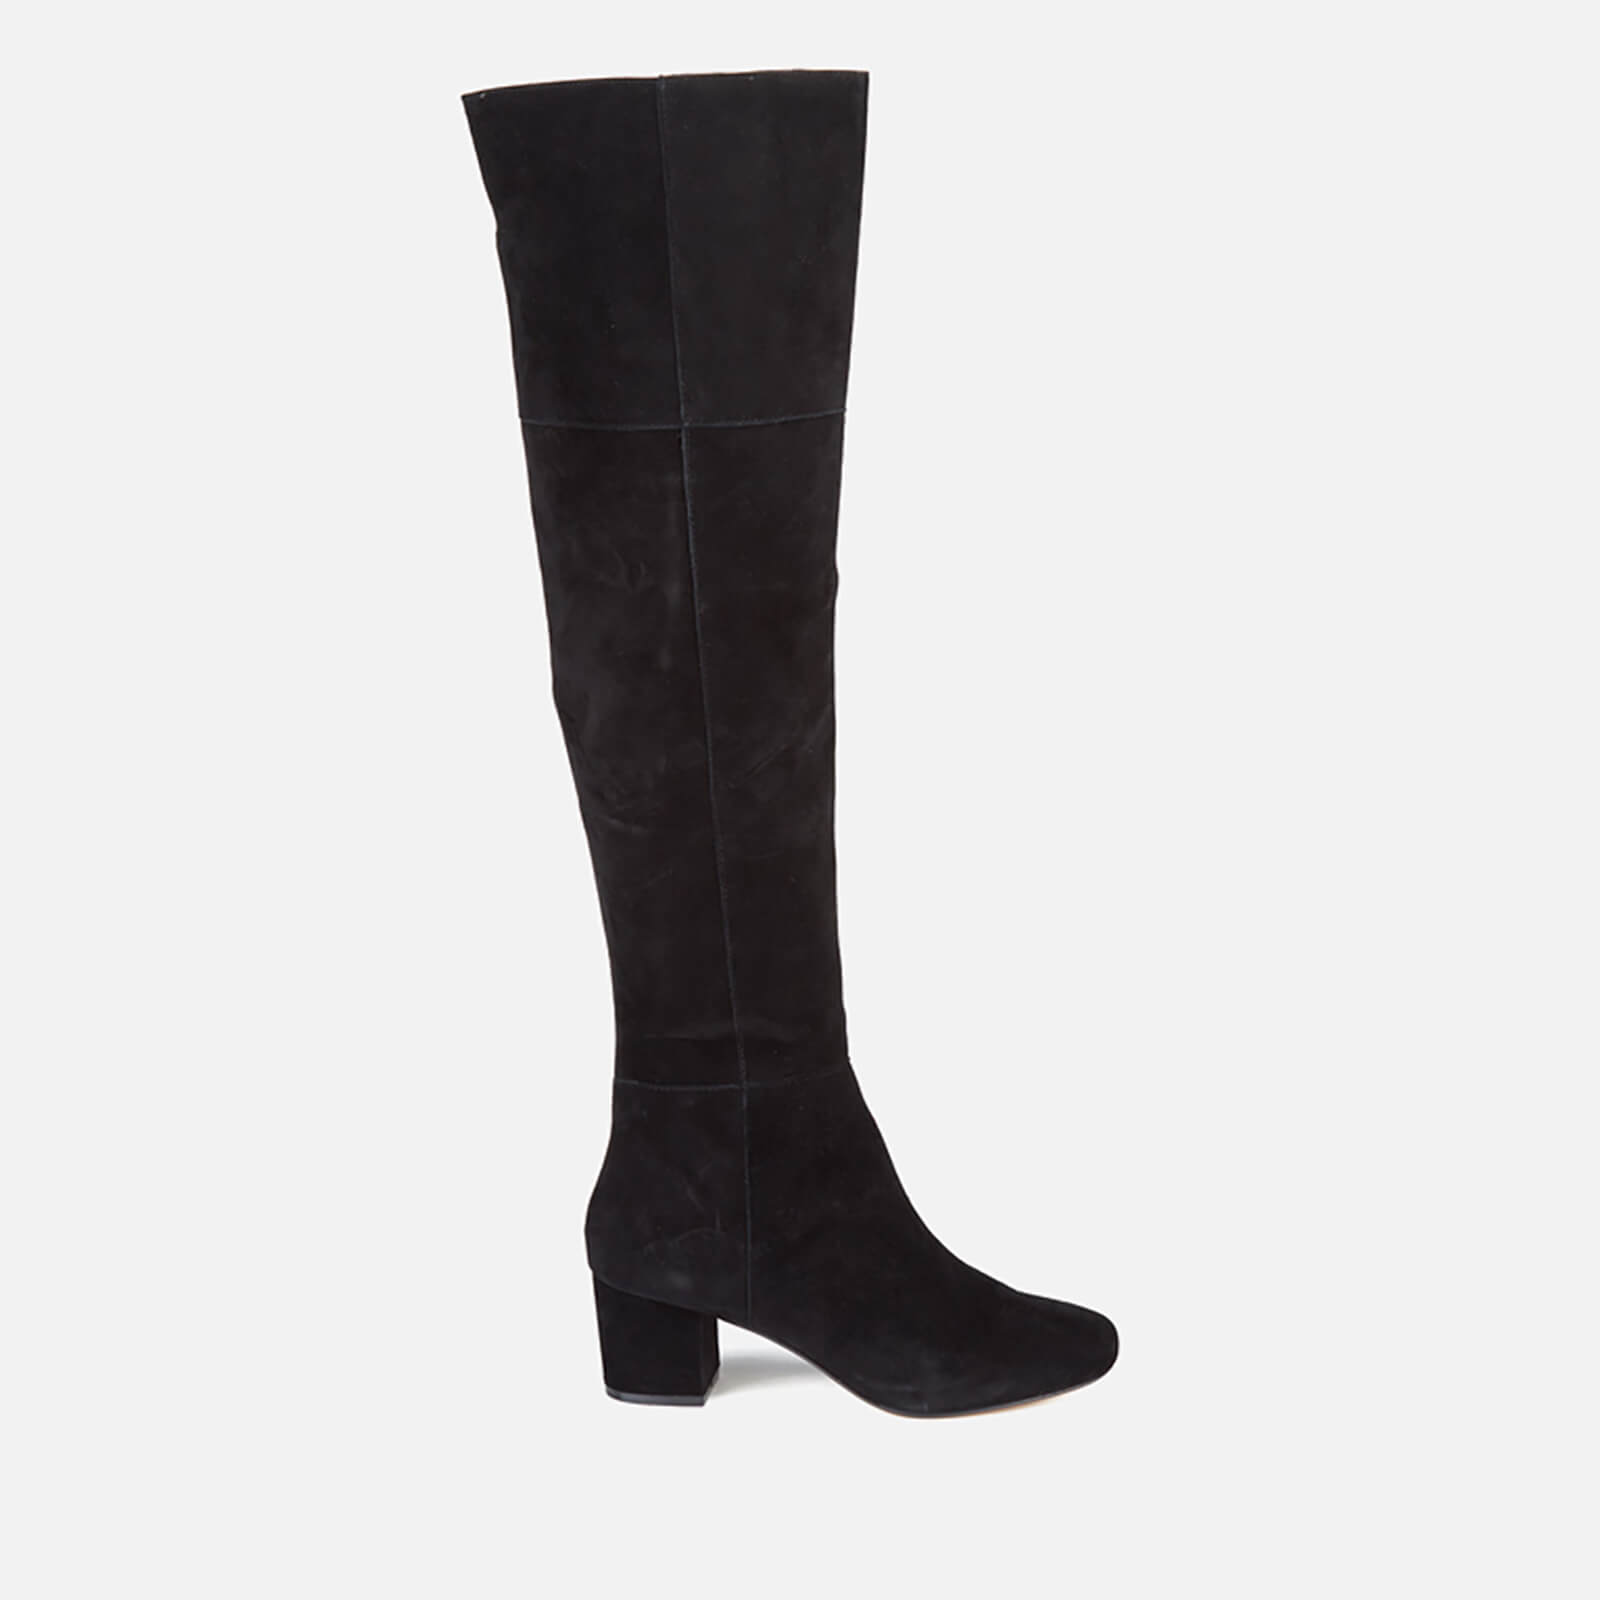 Heeled Black Sanford Thigh Boots Dune Women's Suede High DHW2eE9IY